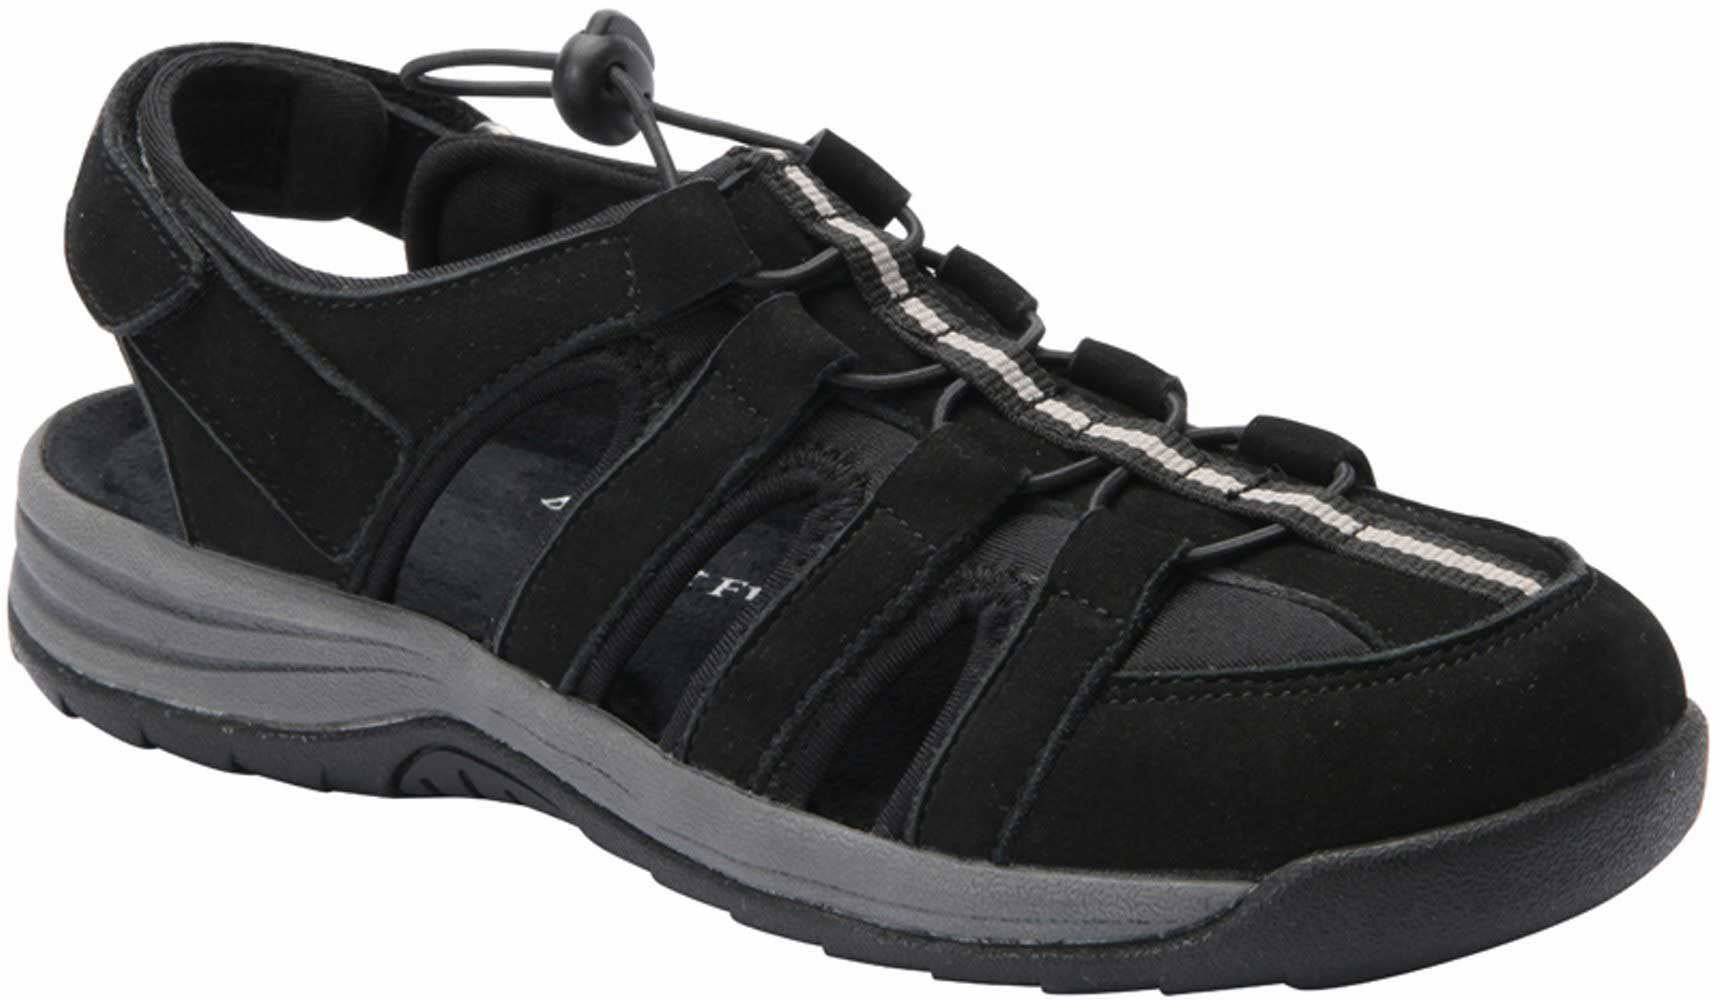 Drew Shoes - Element - Comfort Sandal